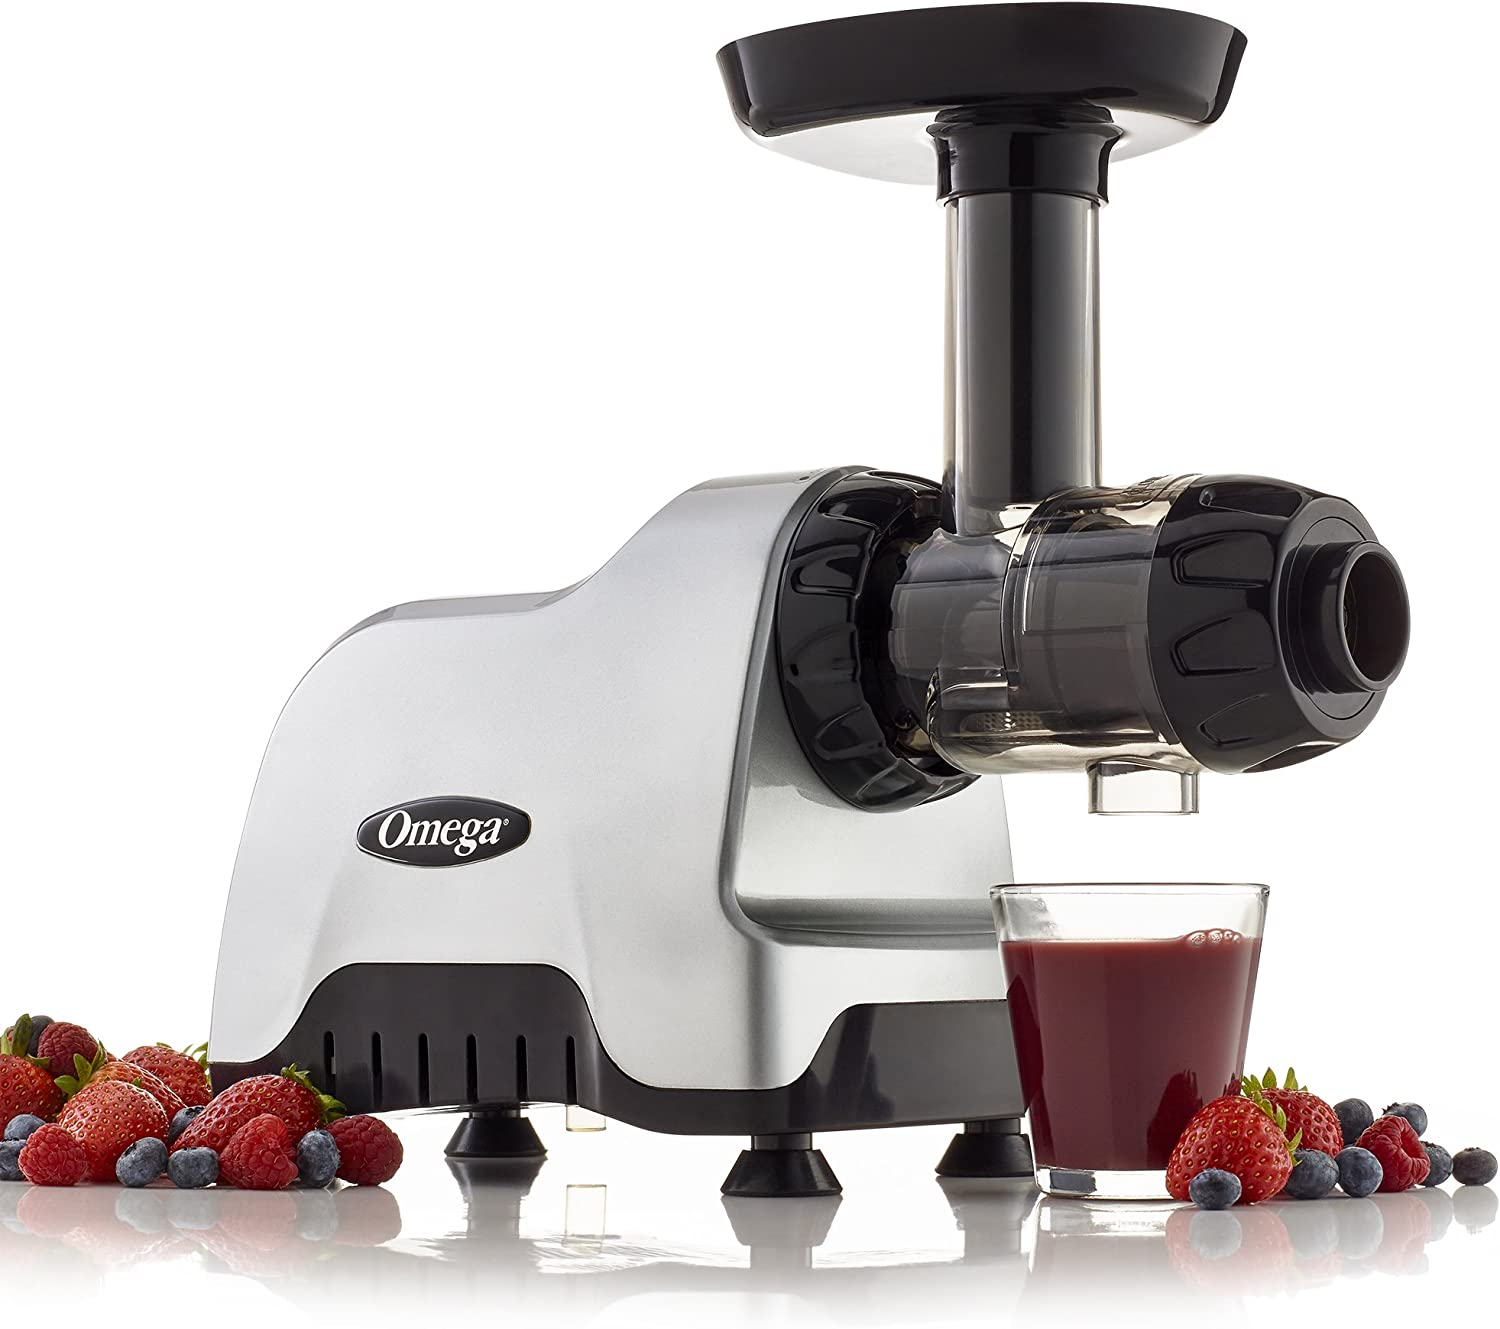 Omega CNC80S Compact Slow Speed Multi Purpose Nutrition Center Juicer with Quiet Motor Creates Continuous Fresh Healthy Fruit and Vegetable Juice at